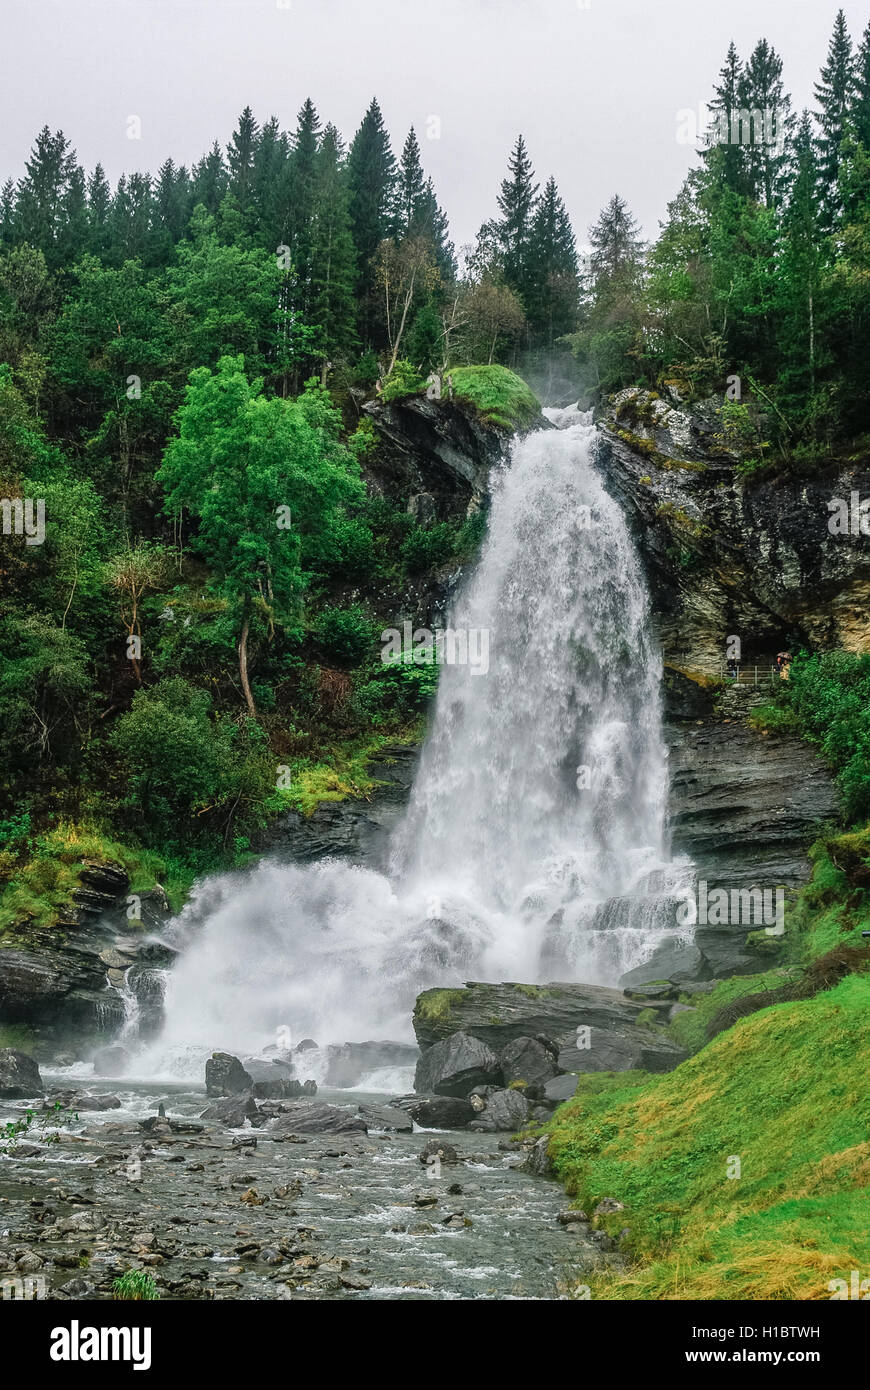 Norway, Hordaland county. Famous Steinsdalsfossen waterfall. Scandinavian nature. - Stock Image